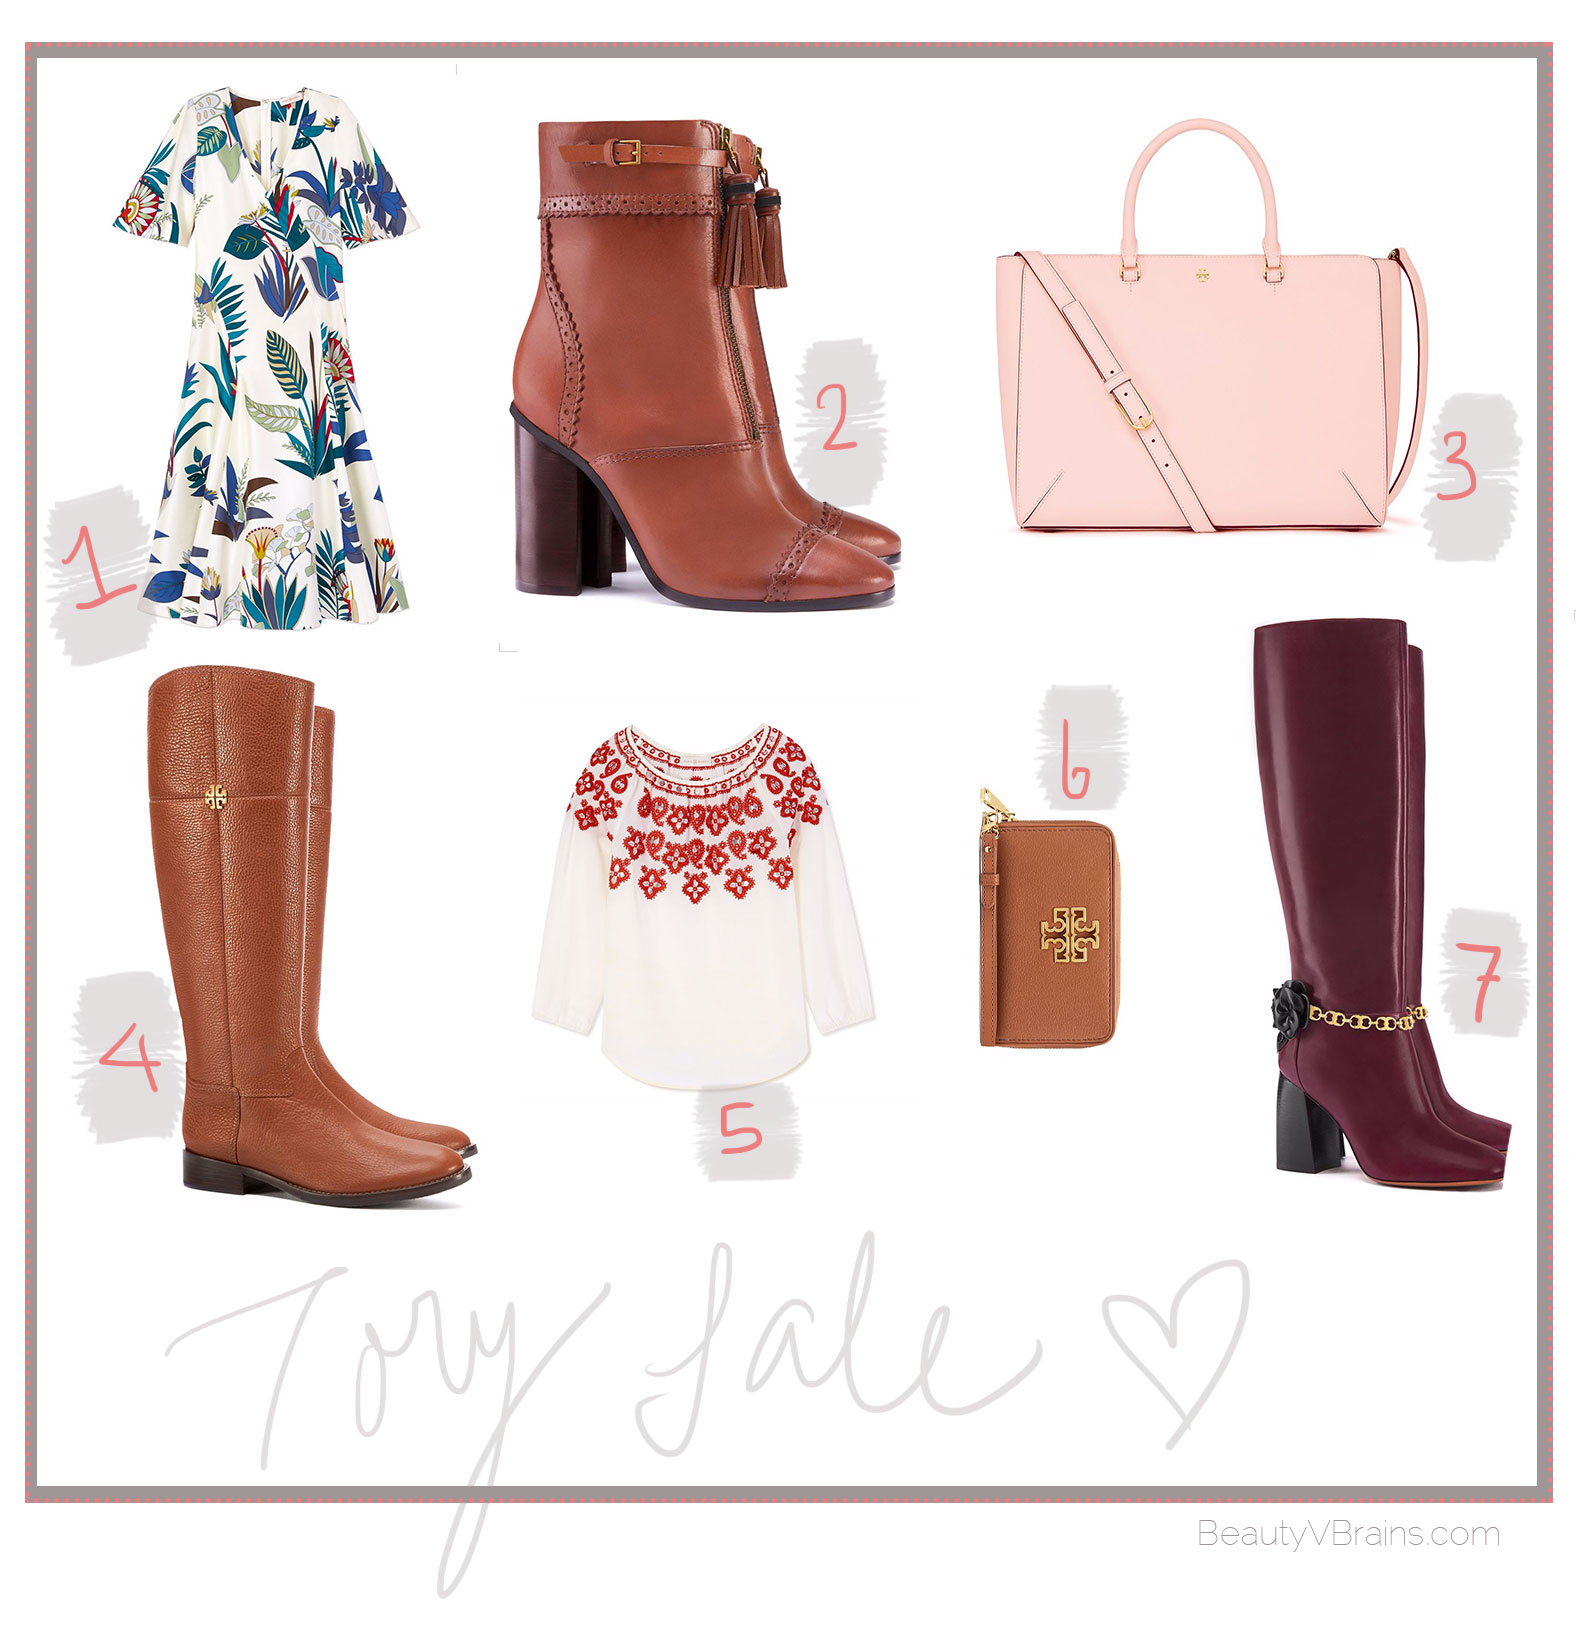 Tory Burch fall 2016 sale